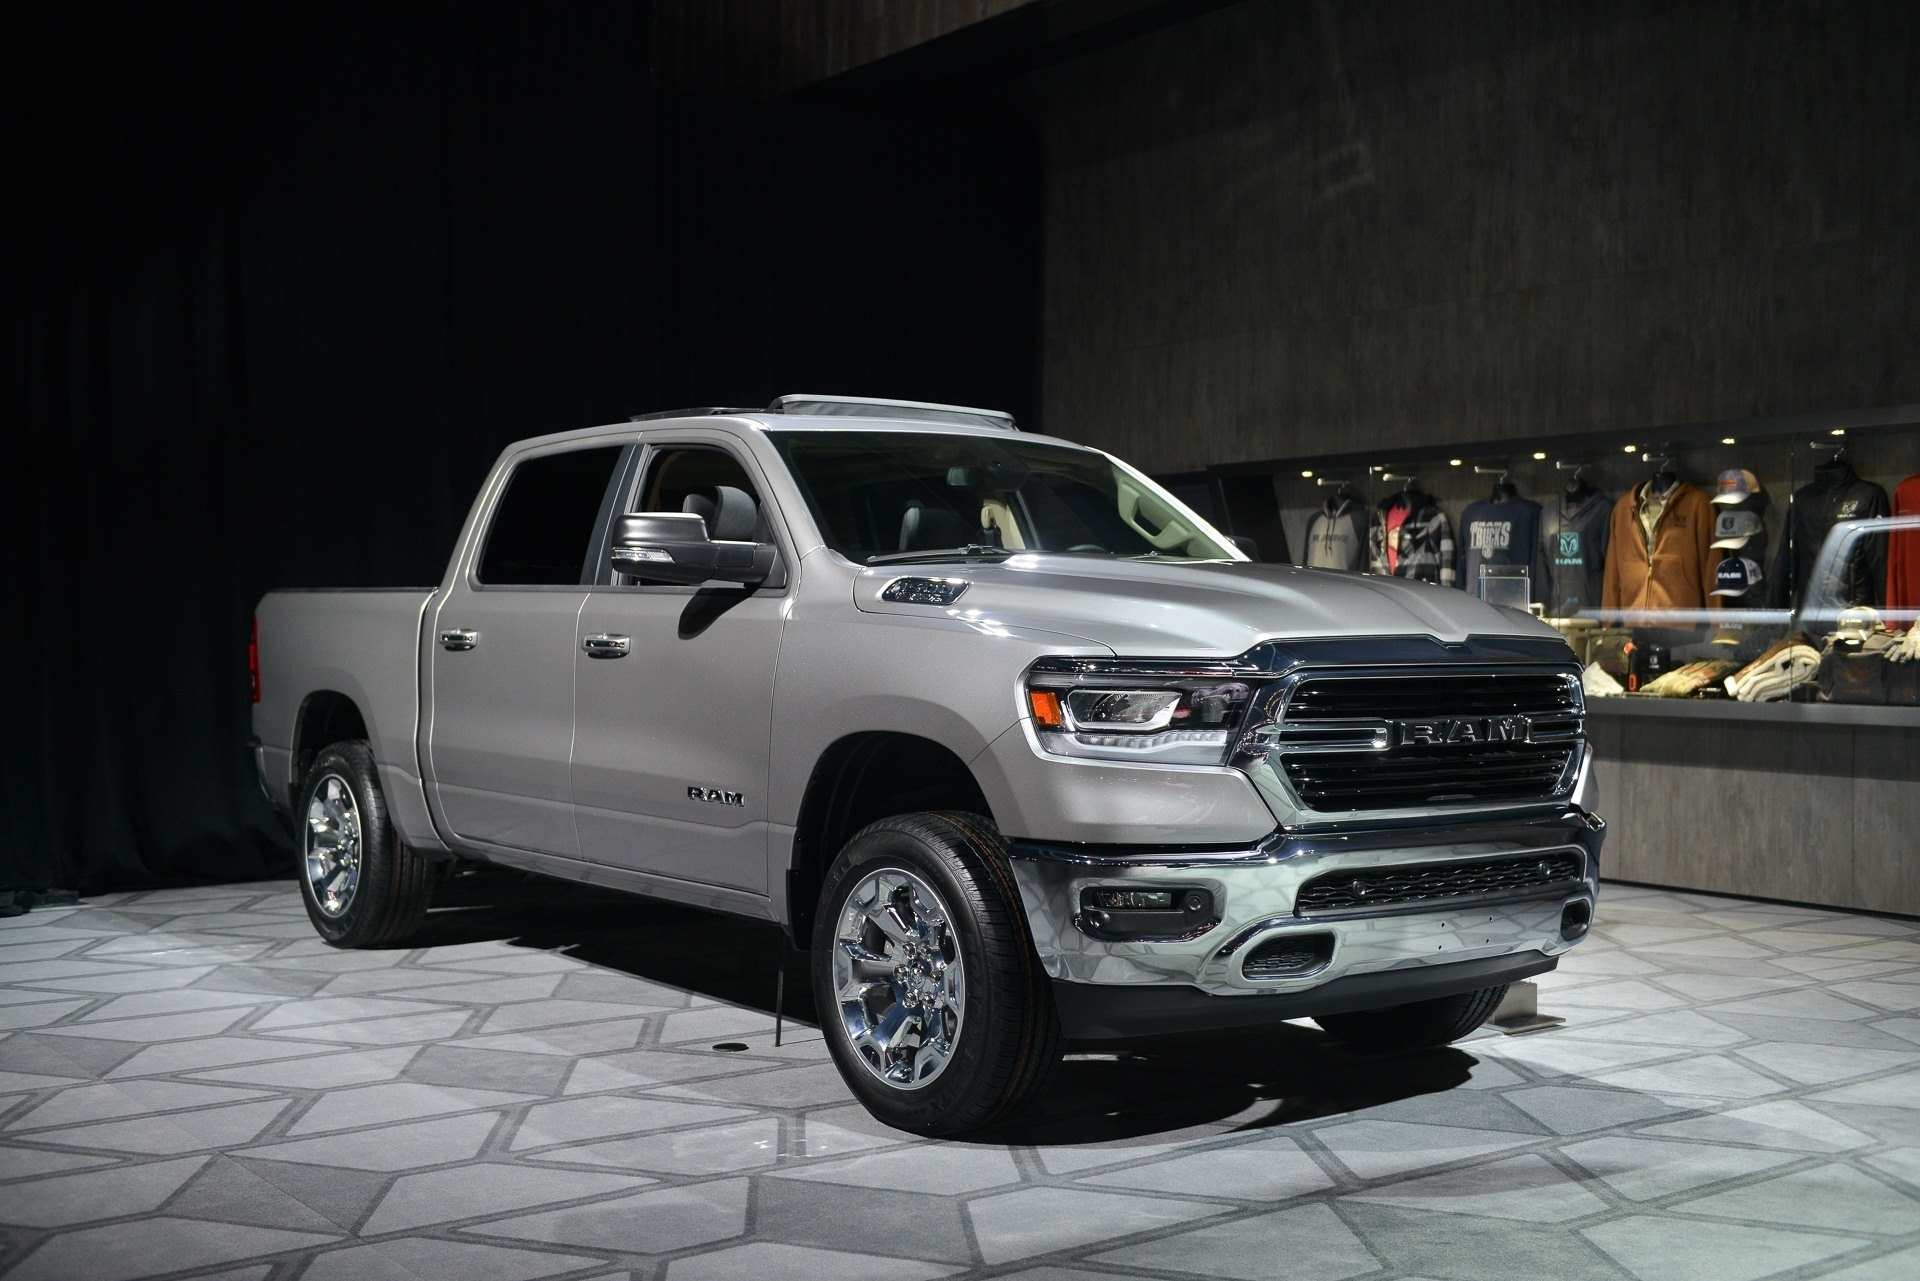 37 New 2020 Dodge Ram 3500 New Review